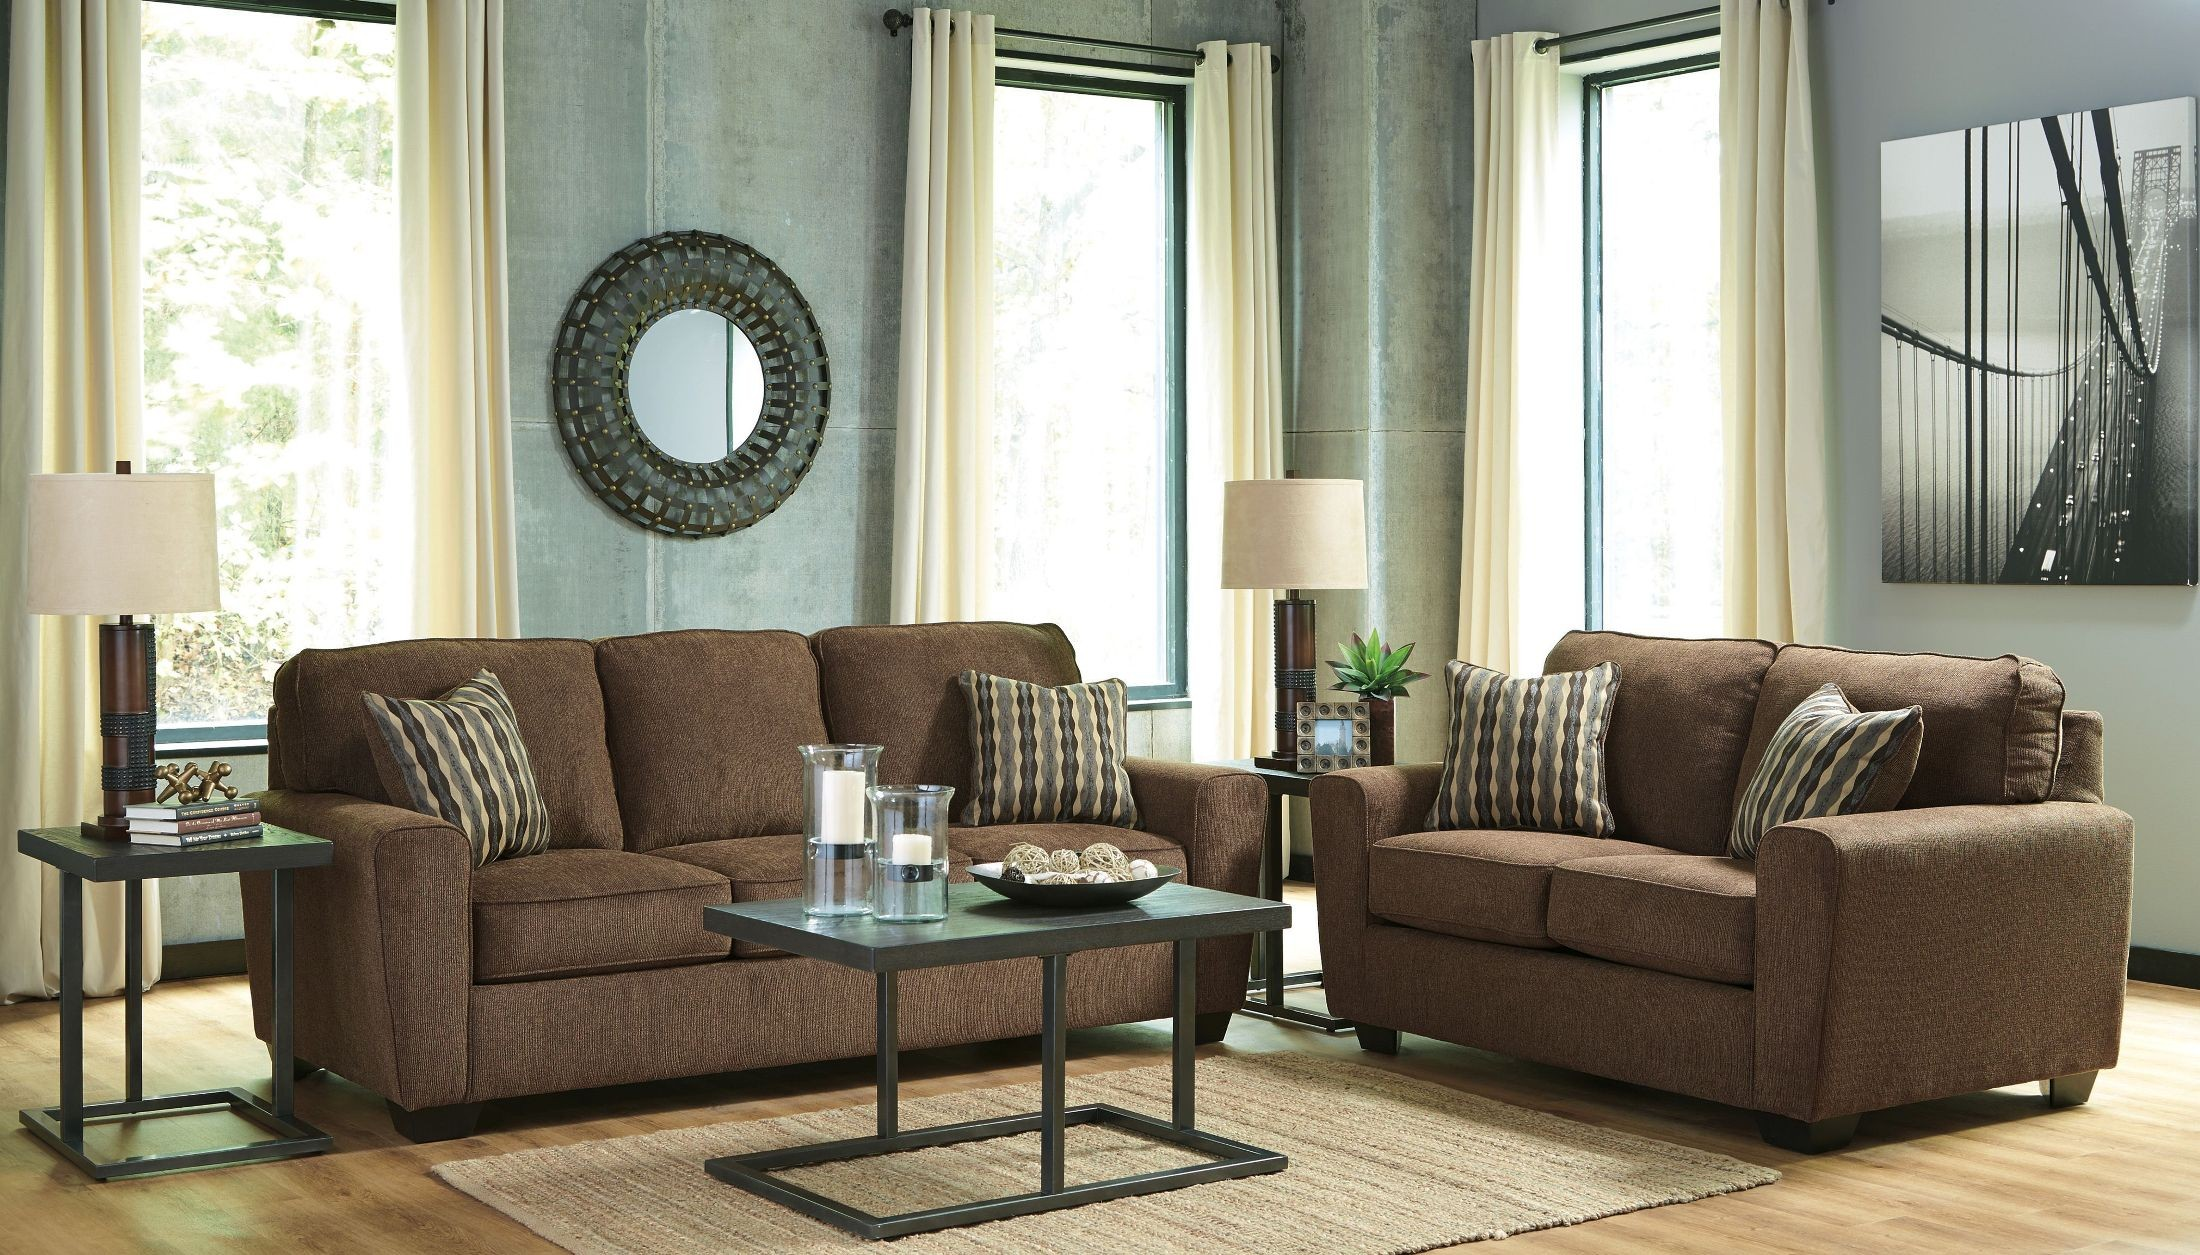 Landoff Walnut Living Room Set 2460438 Ashley